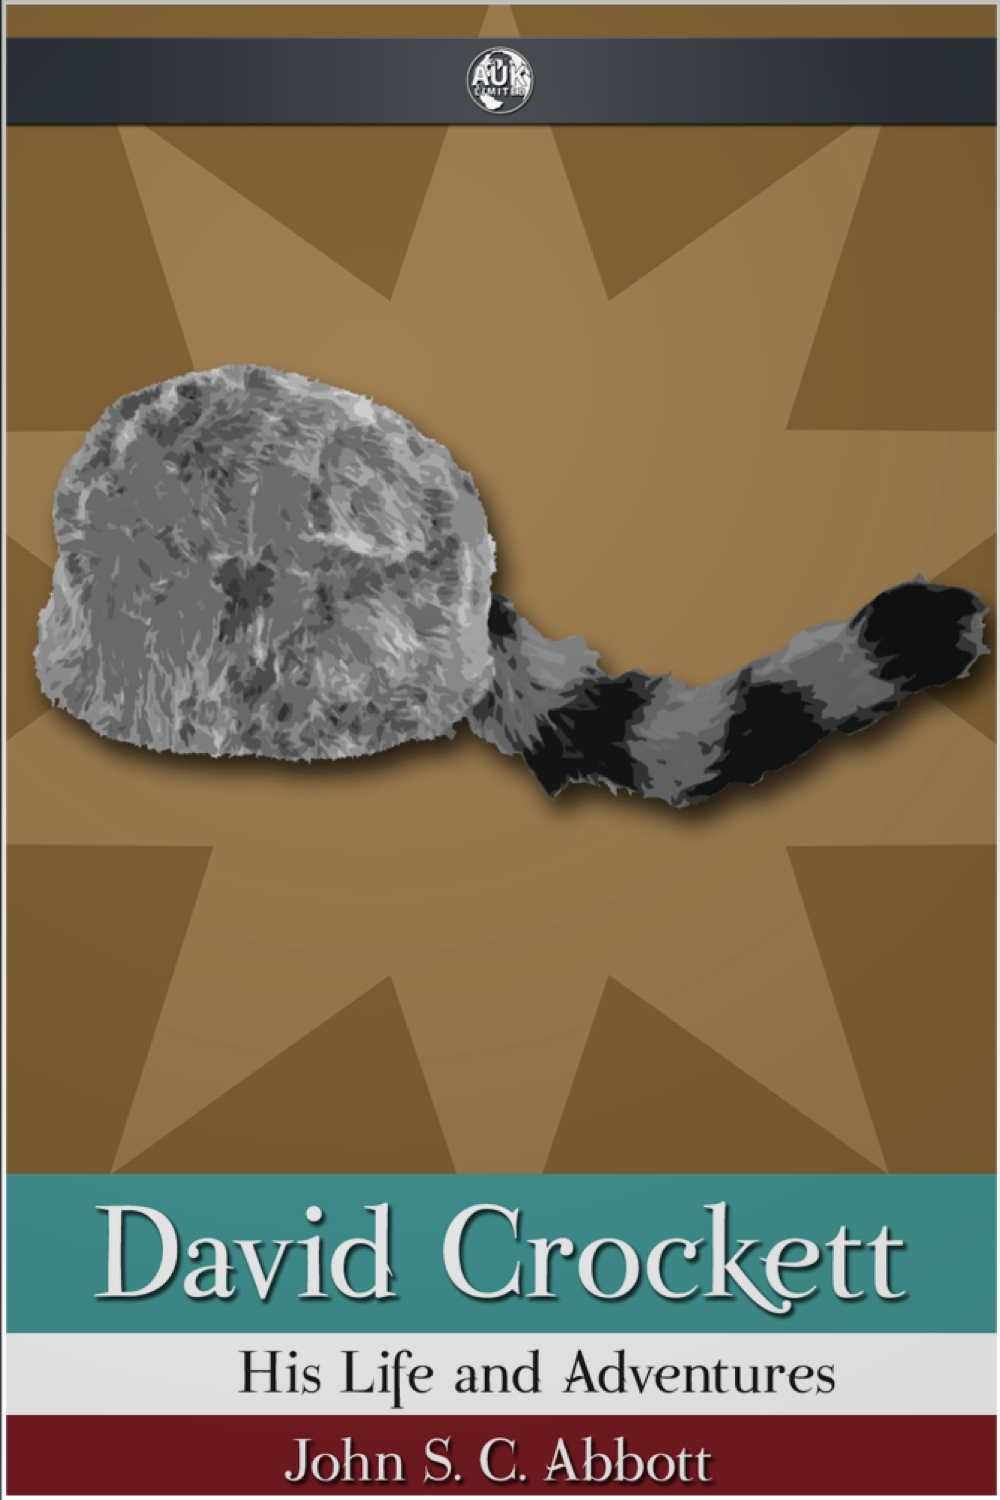 David Crockett By: John S. C. Abbott